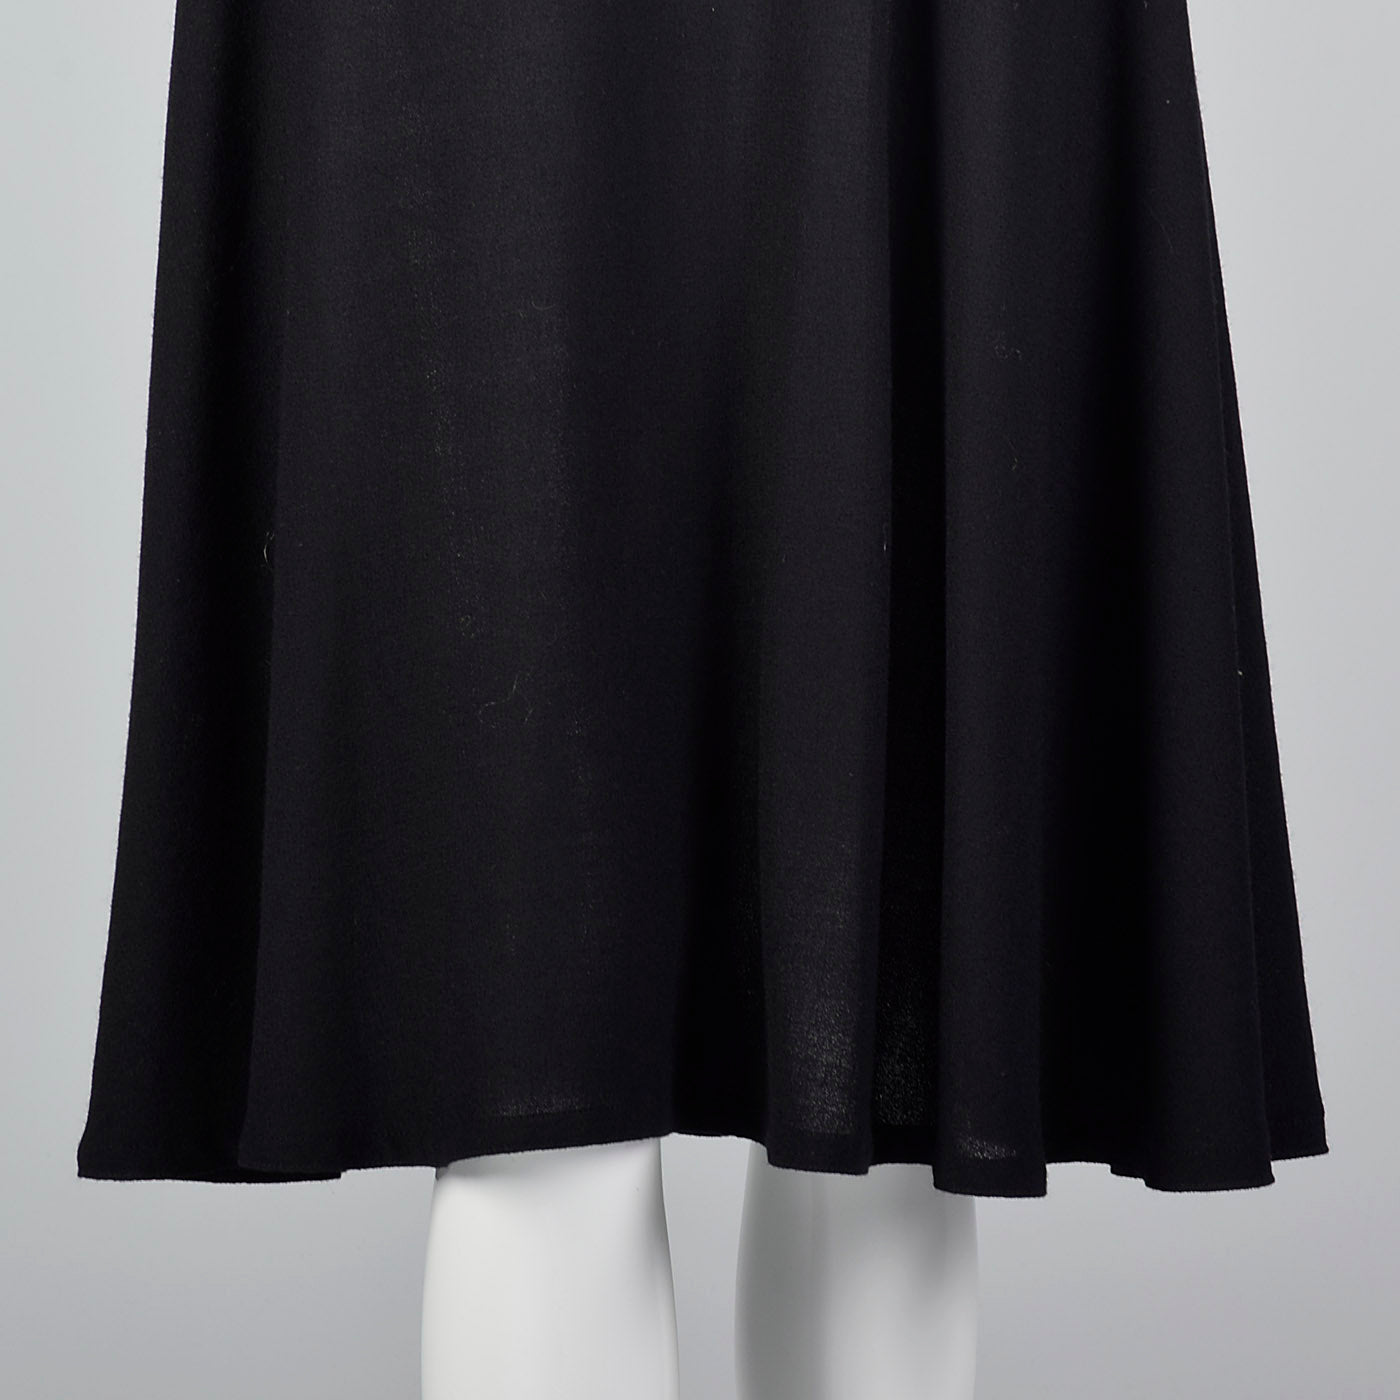 1970s Adele Simpson Black Wool Dress with Drop Waist